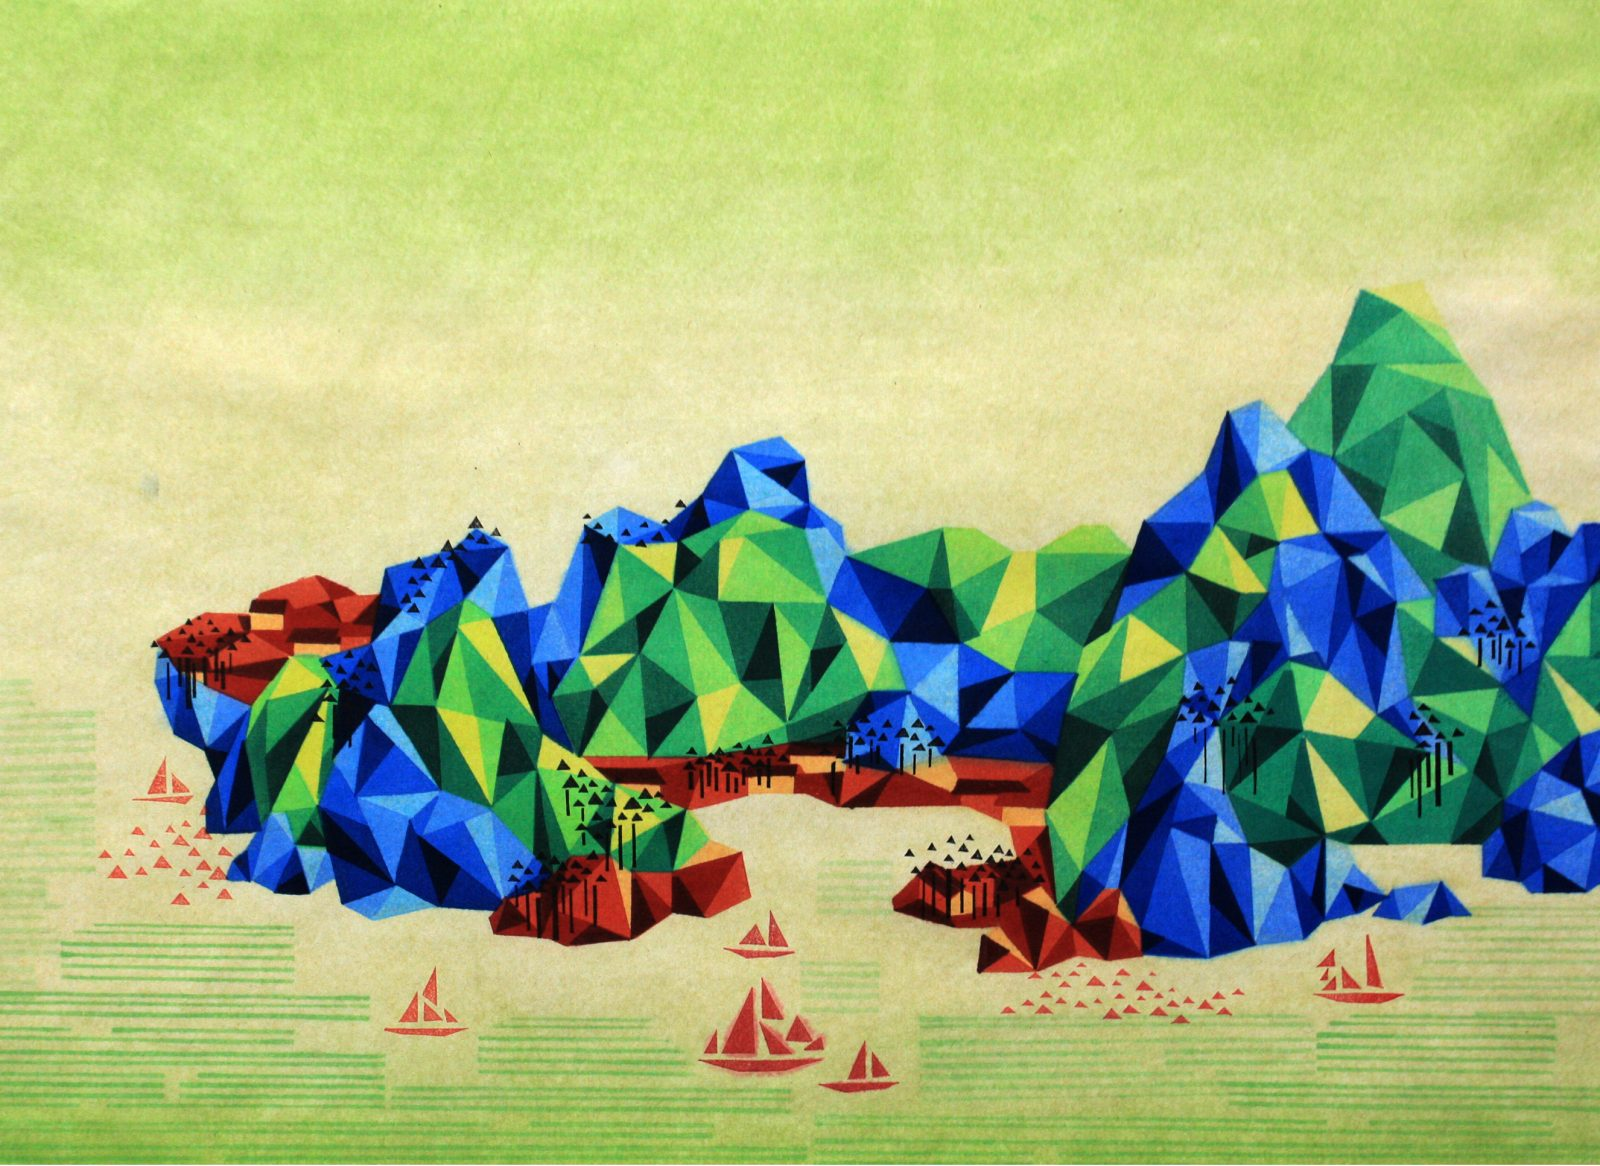 Reconstructed Landscape ,《重构山水-7》, 50×68cm, 2014 Waterbased woodcut